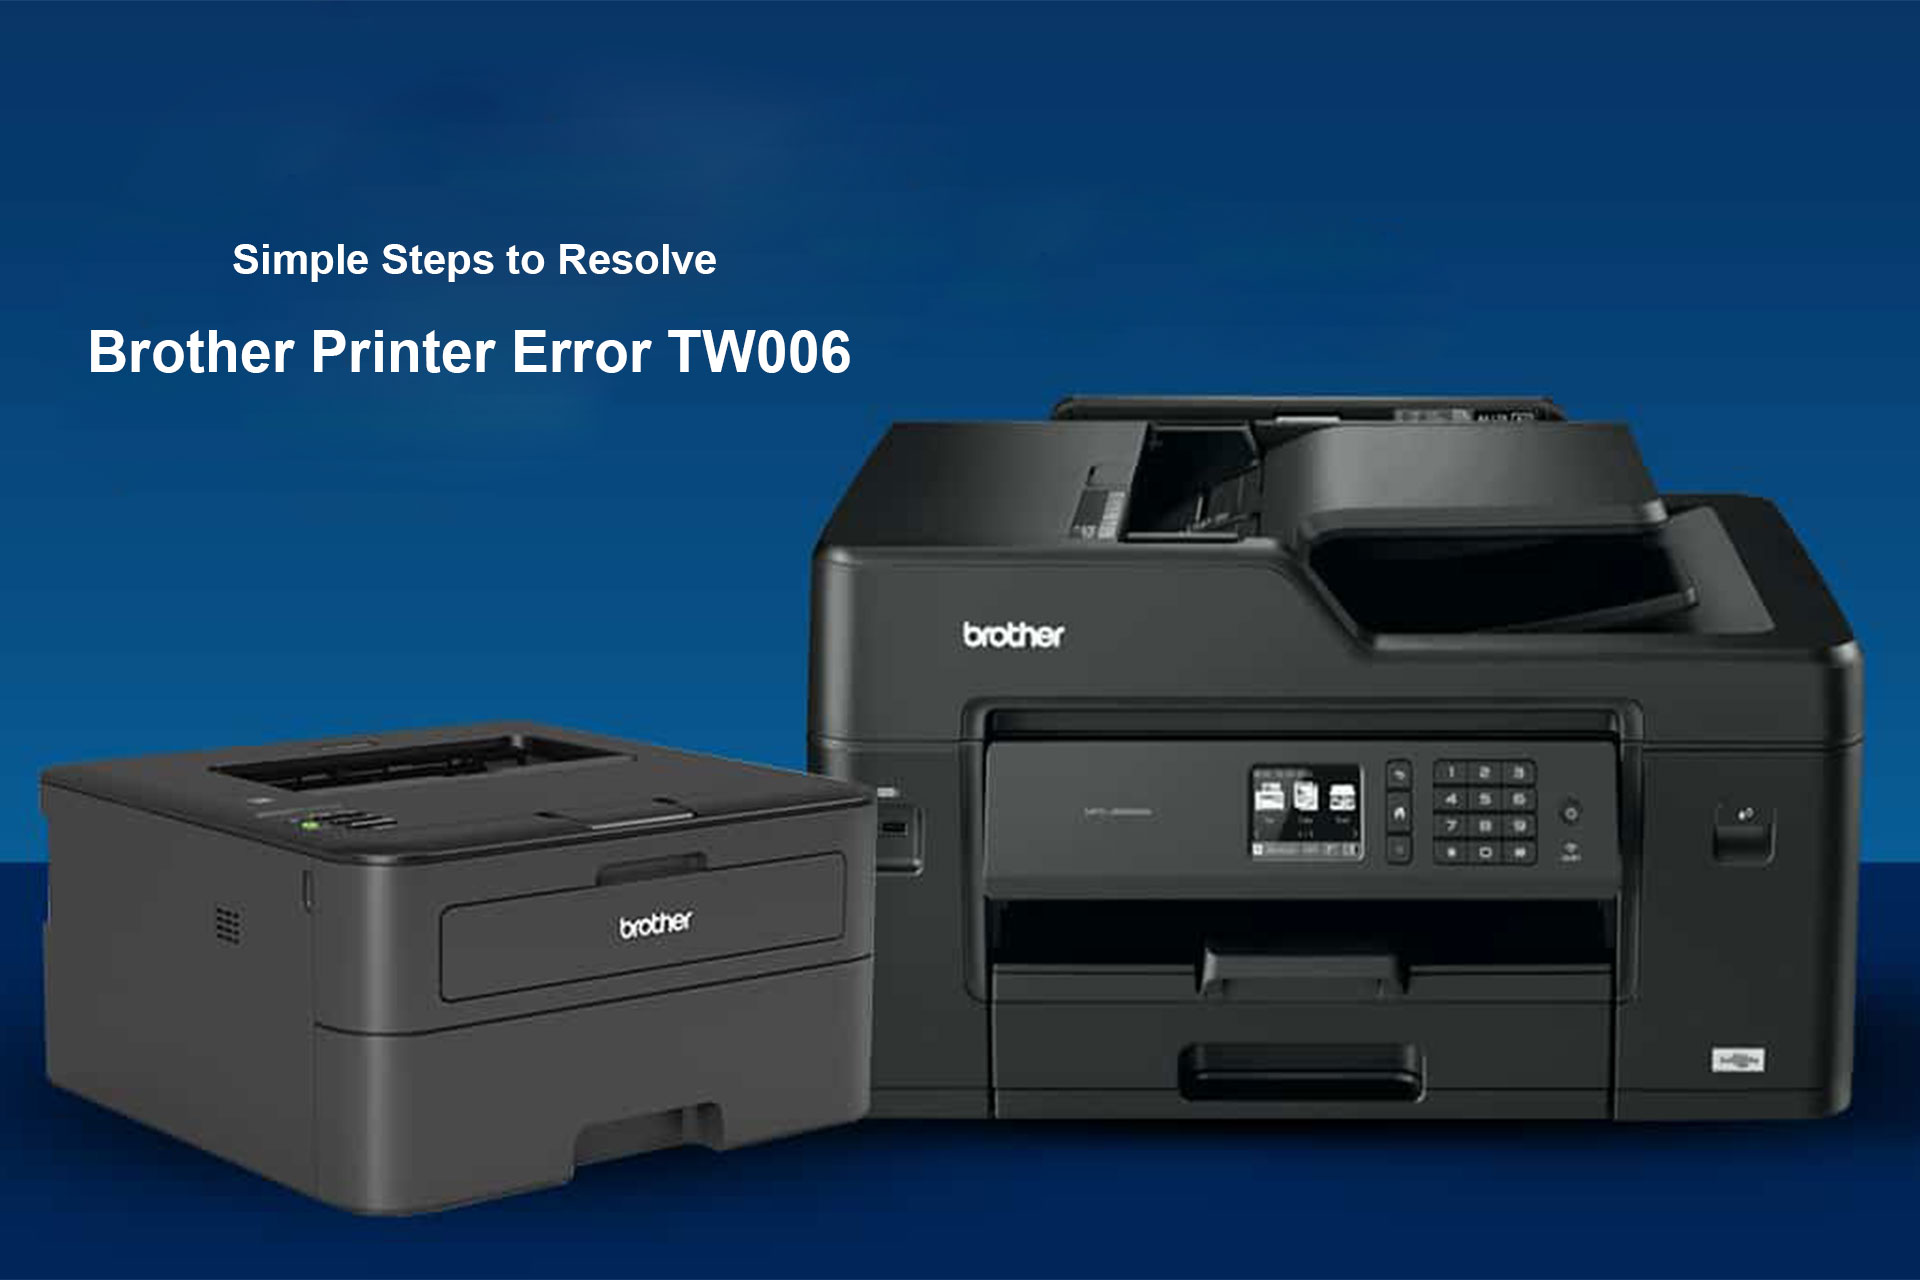 Simple Steps to Resolve Brother Printer Error TW006